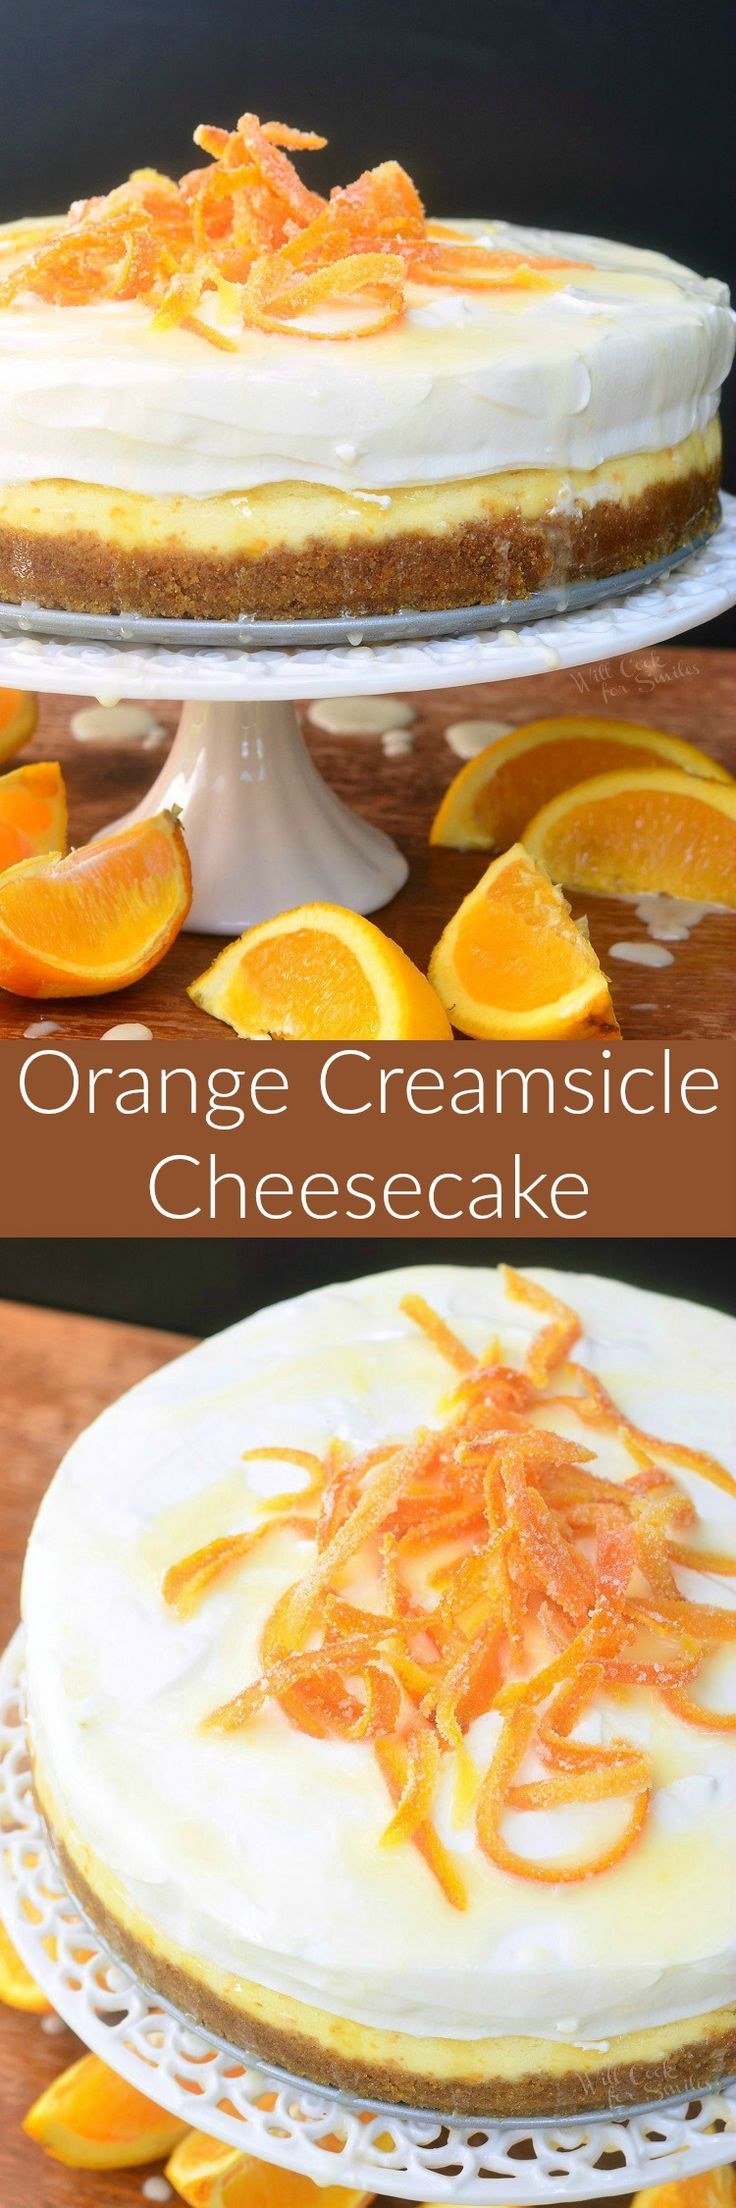 Orange Creamsicle Cheesecake. This bring and sunny cheesecake is made with fresh orange flavors throughout, topped with orange whipped cream, orange glaze, and candied orange peels.